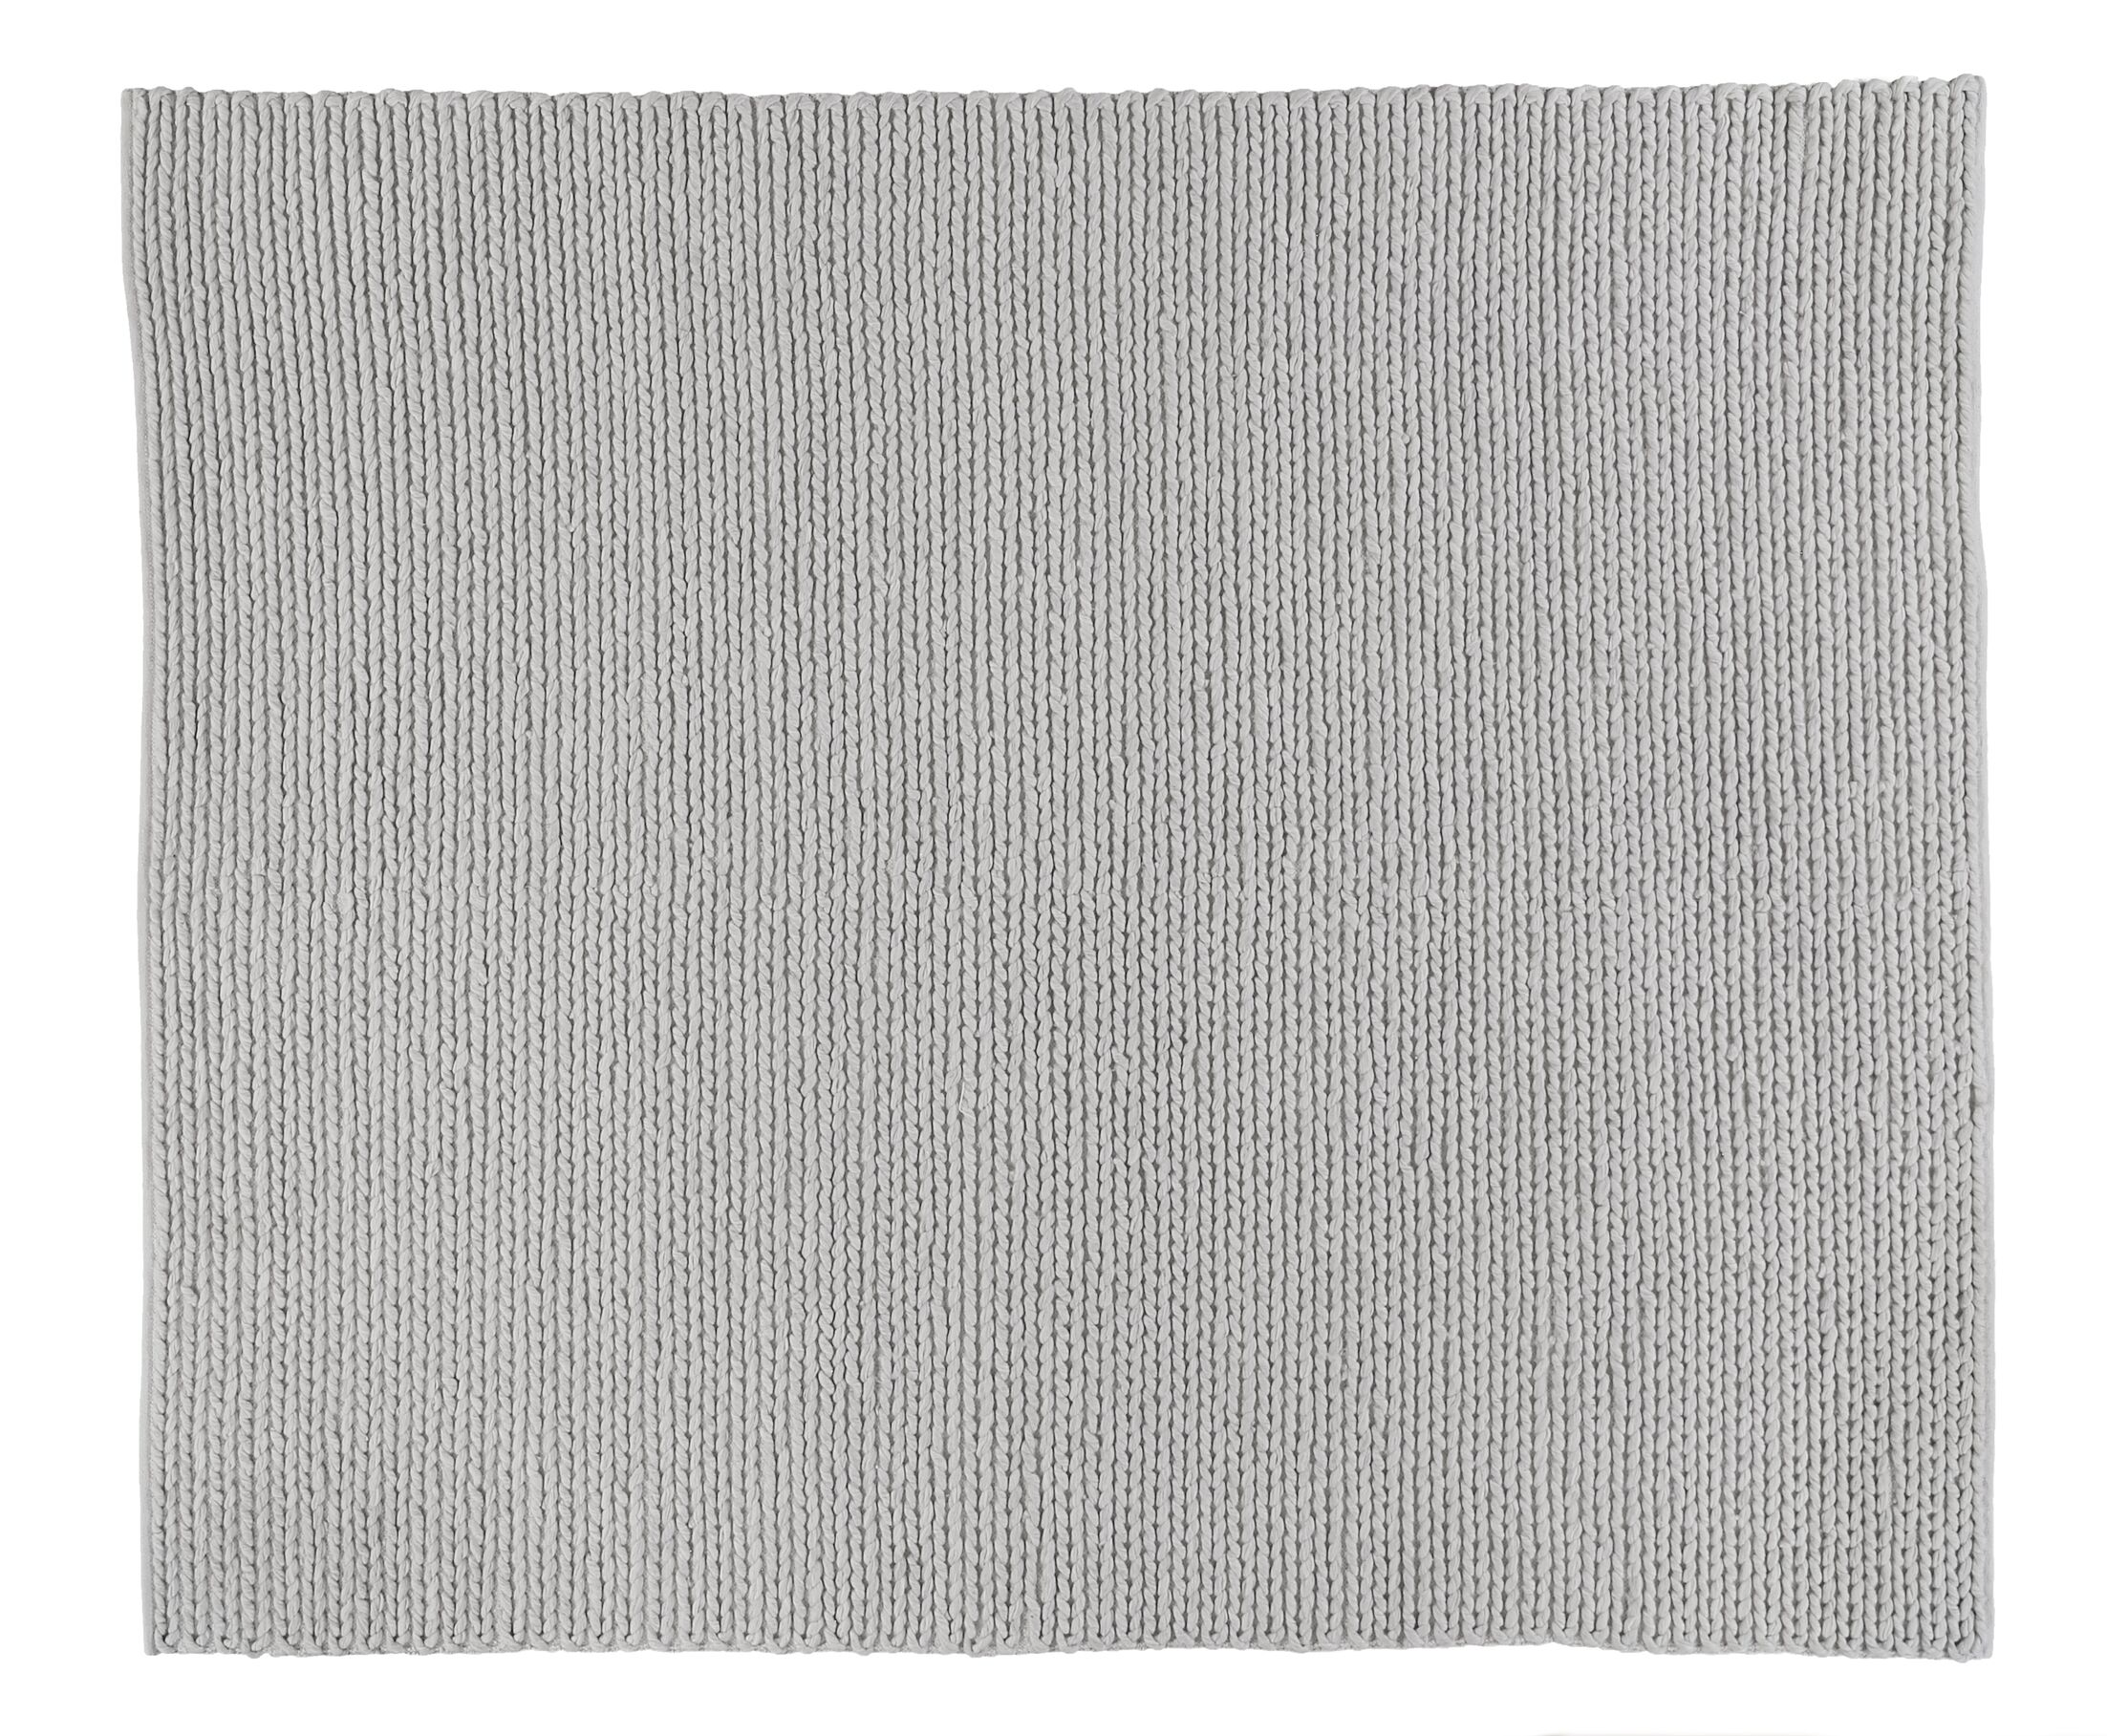 Arlow Hand-Woven Light Gray Area Rug Rug Size: Rectangle 6' x 9'